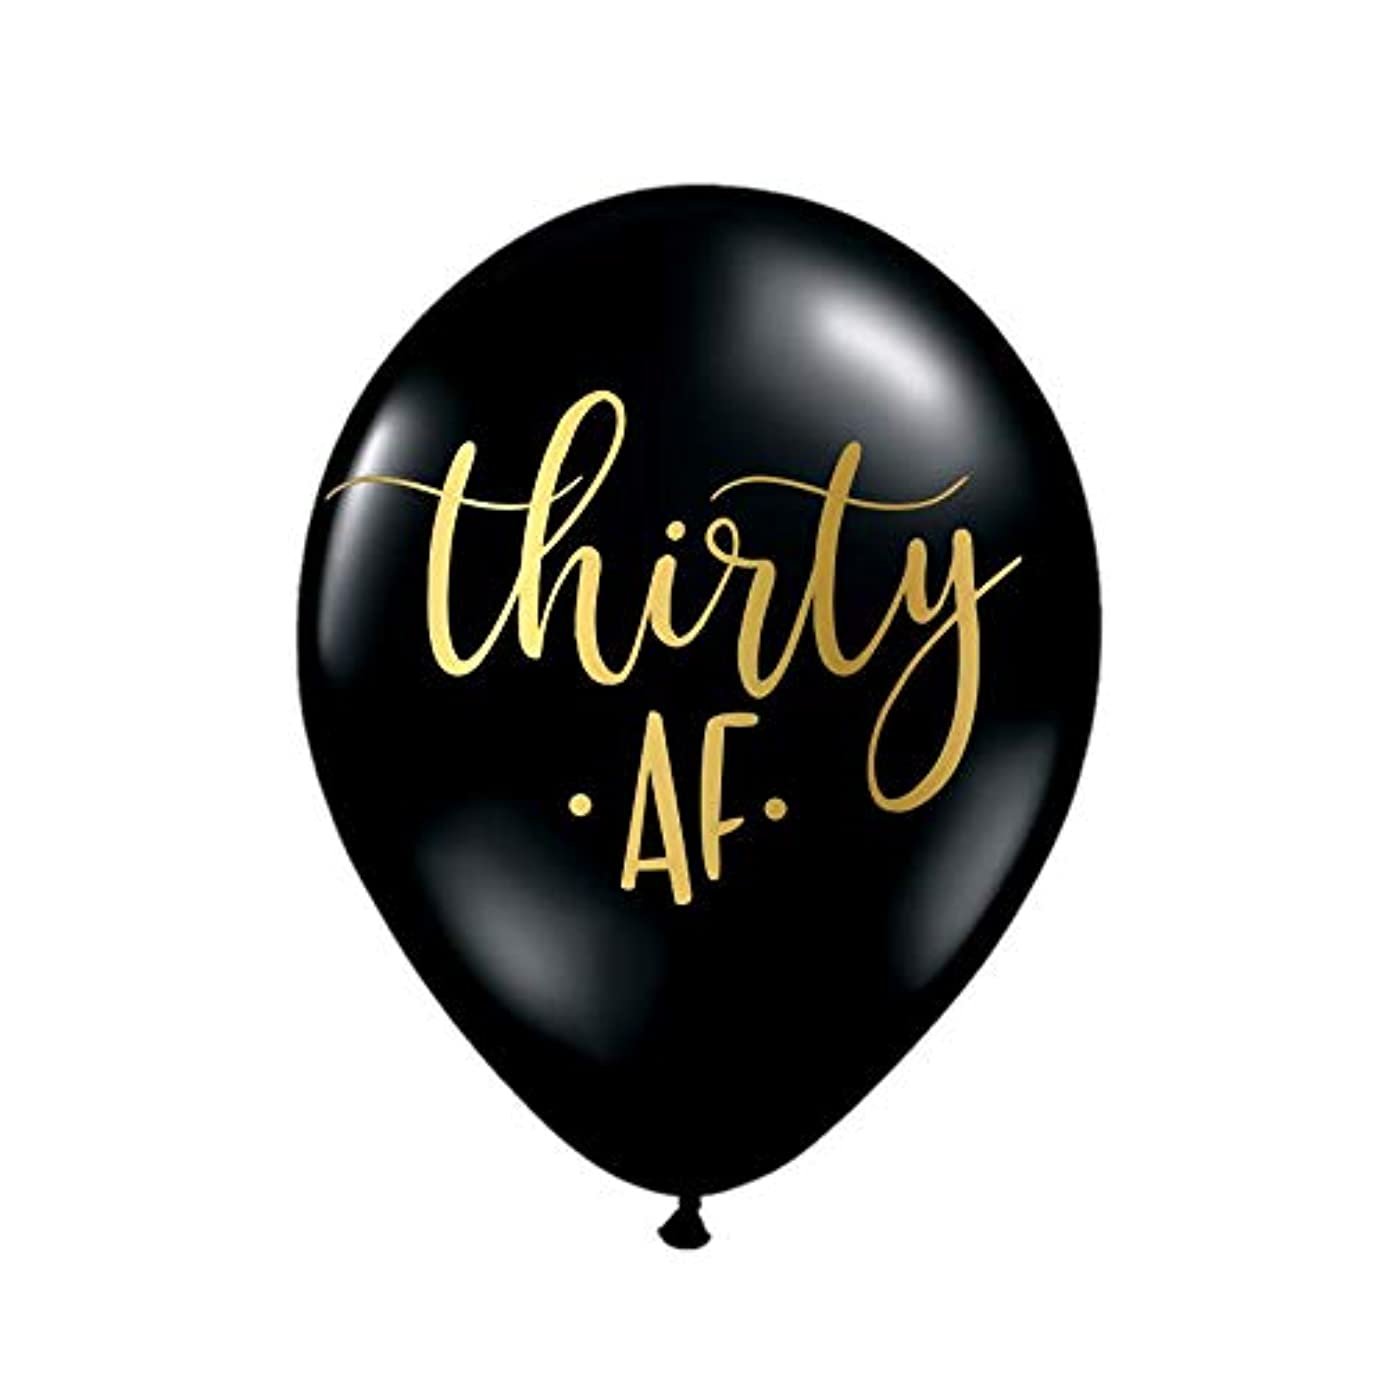 Cute Thirty AF 30th Birthday Party Balloons in Black and Gold, 30th Birthday Decorations, 30th Birthday, Funny 30th Balloons, Gag Gift for 30th Birthday, 30 AF, Thirty AF, Set of 3